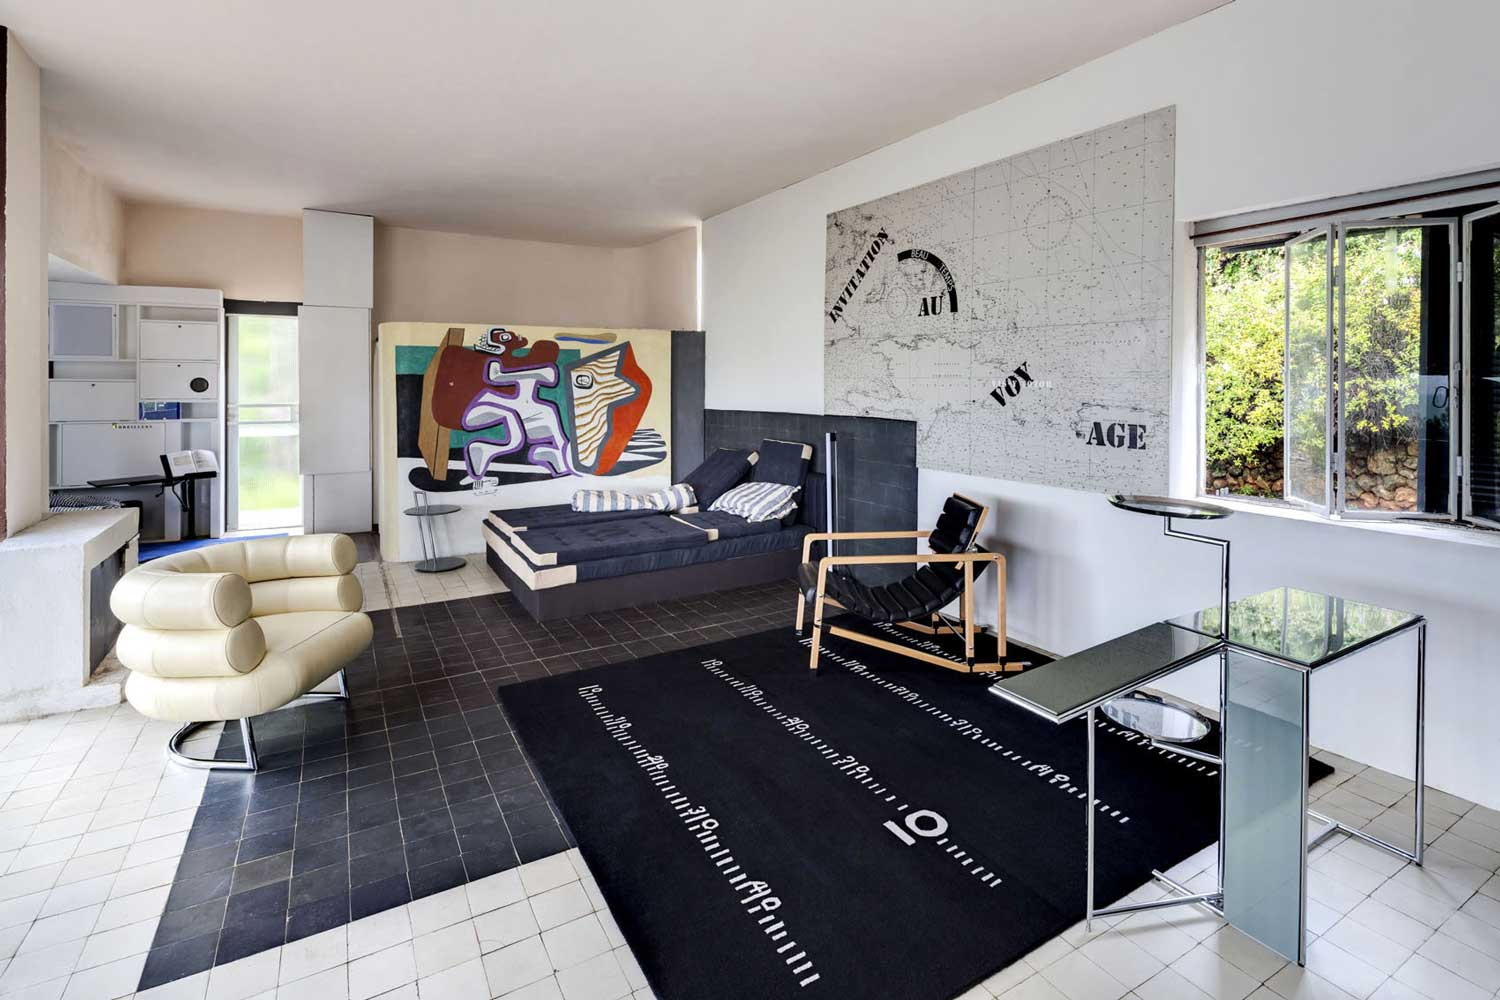 Restauration Of Villa E 1027 By Eileen Gray. Photo By Manuel Bougo |  Yellowtrace